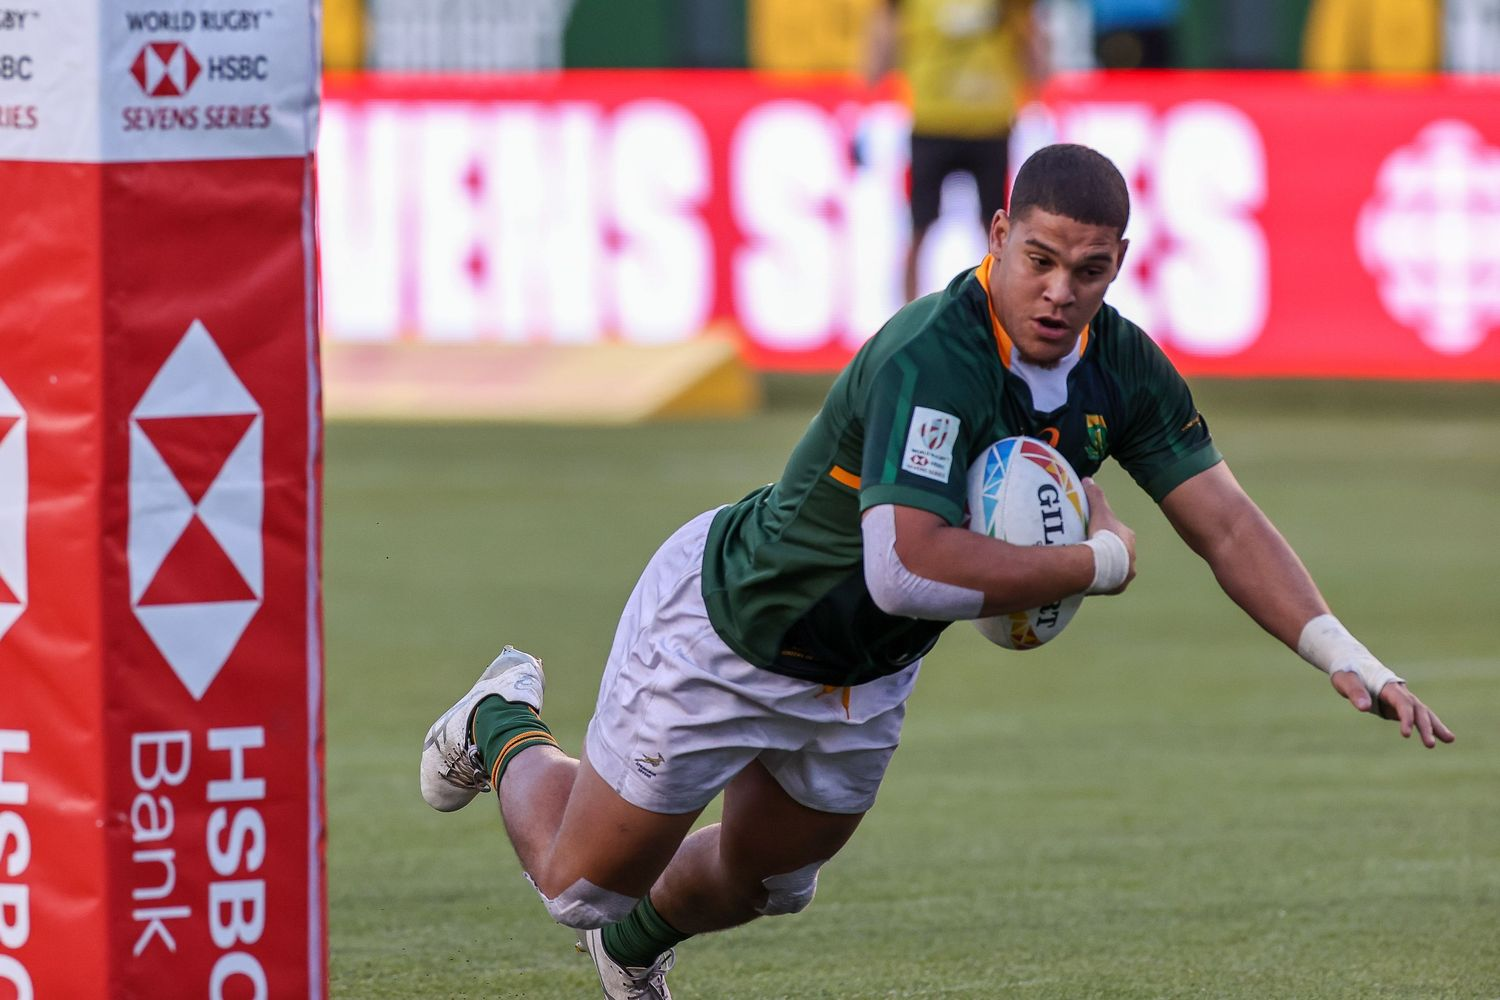 HSBC World Rugby Sevens Series Men's - Day 1